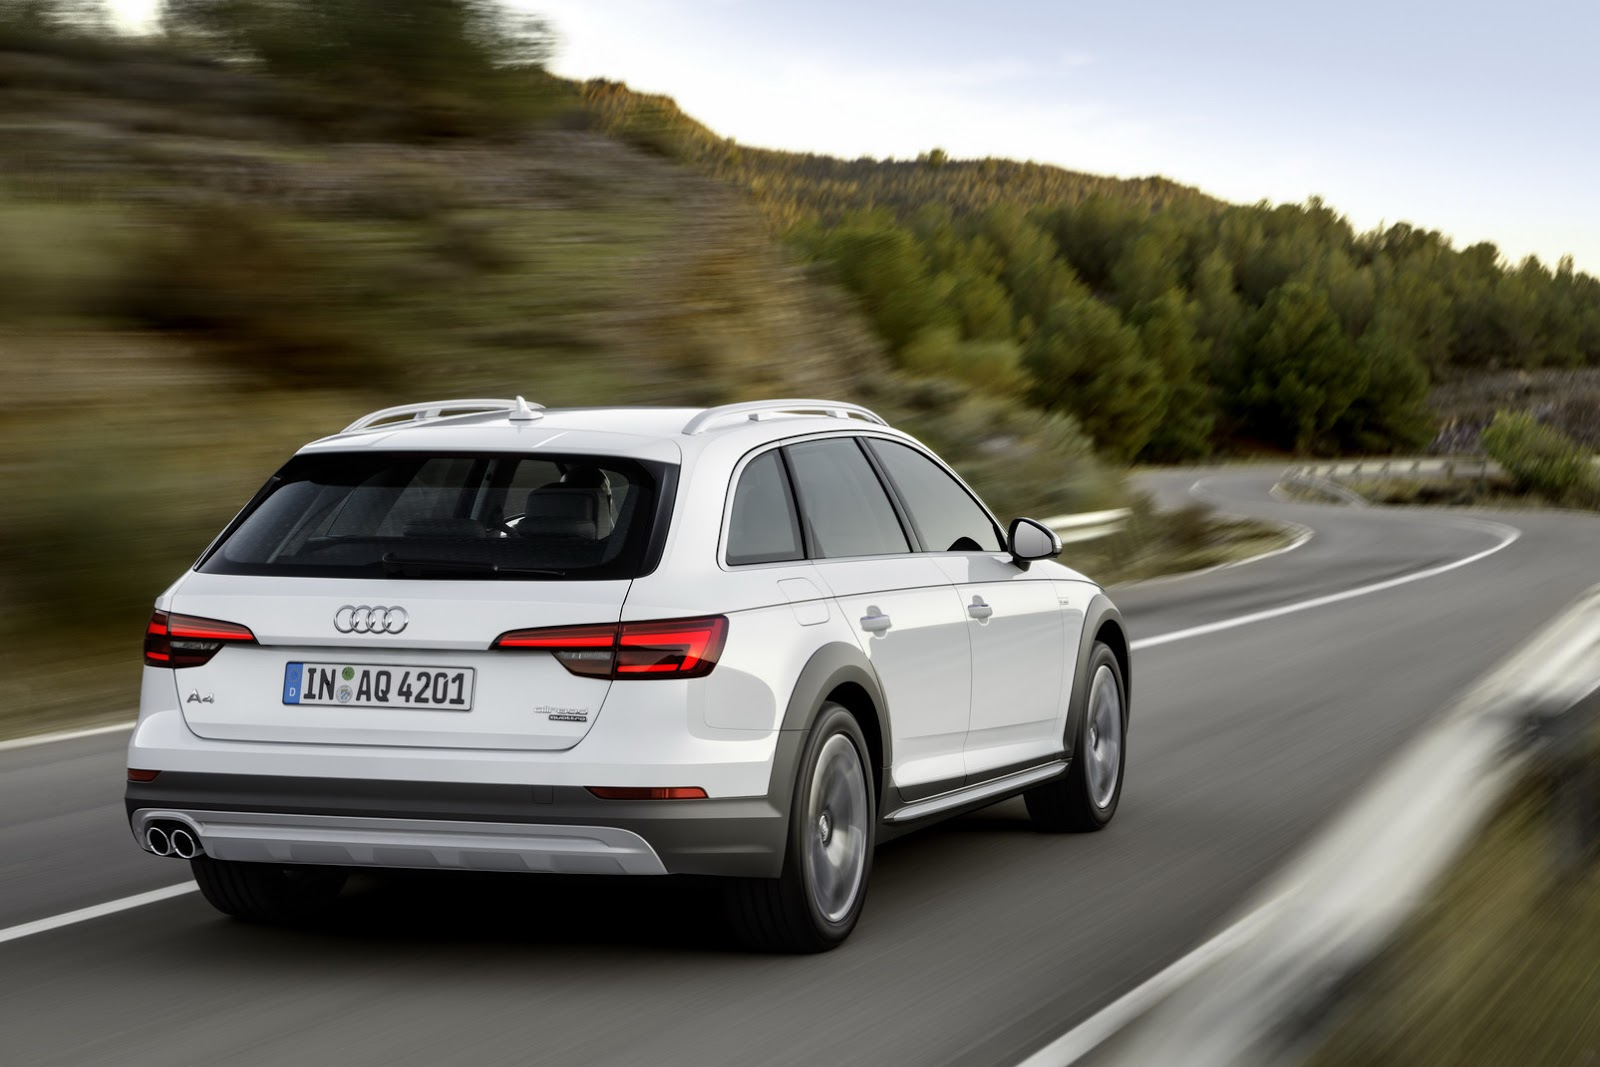 All-New Audi A4 allroad quattro Available from €44,750 with 2.0 and 3.0 Engines - autoevolution